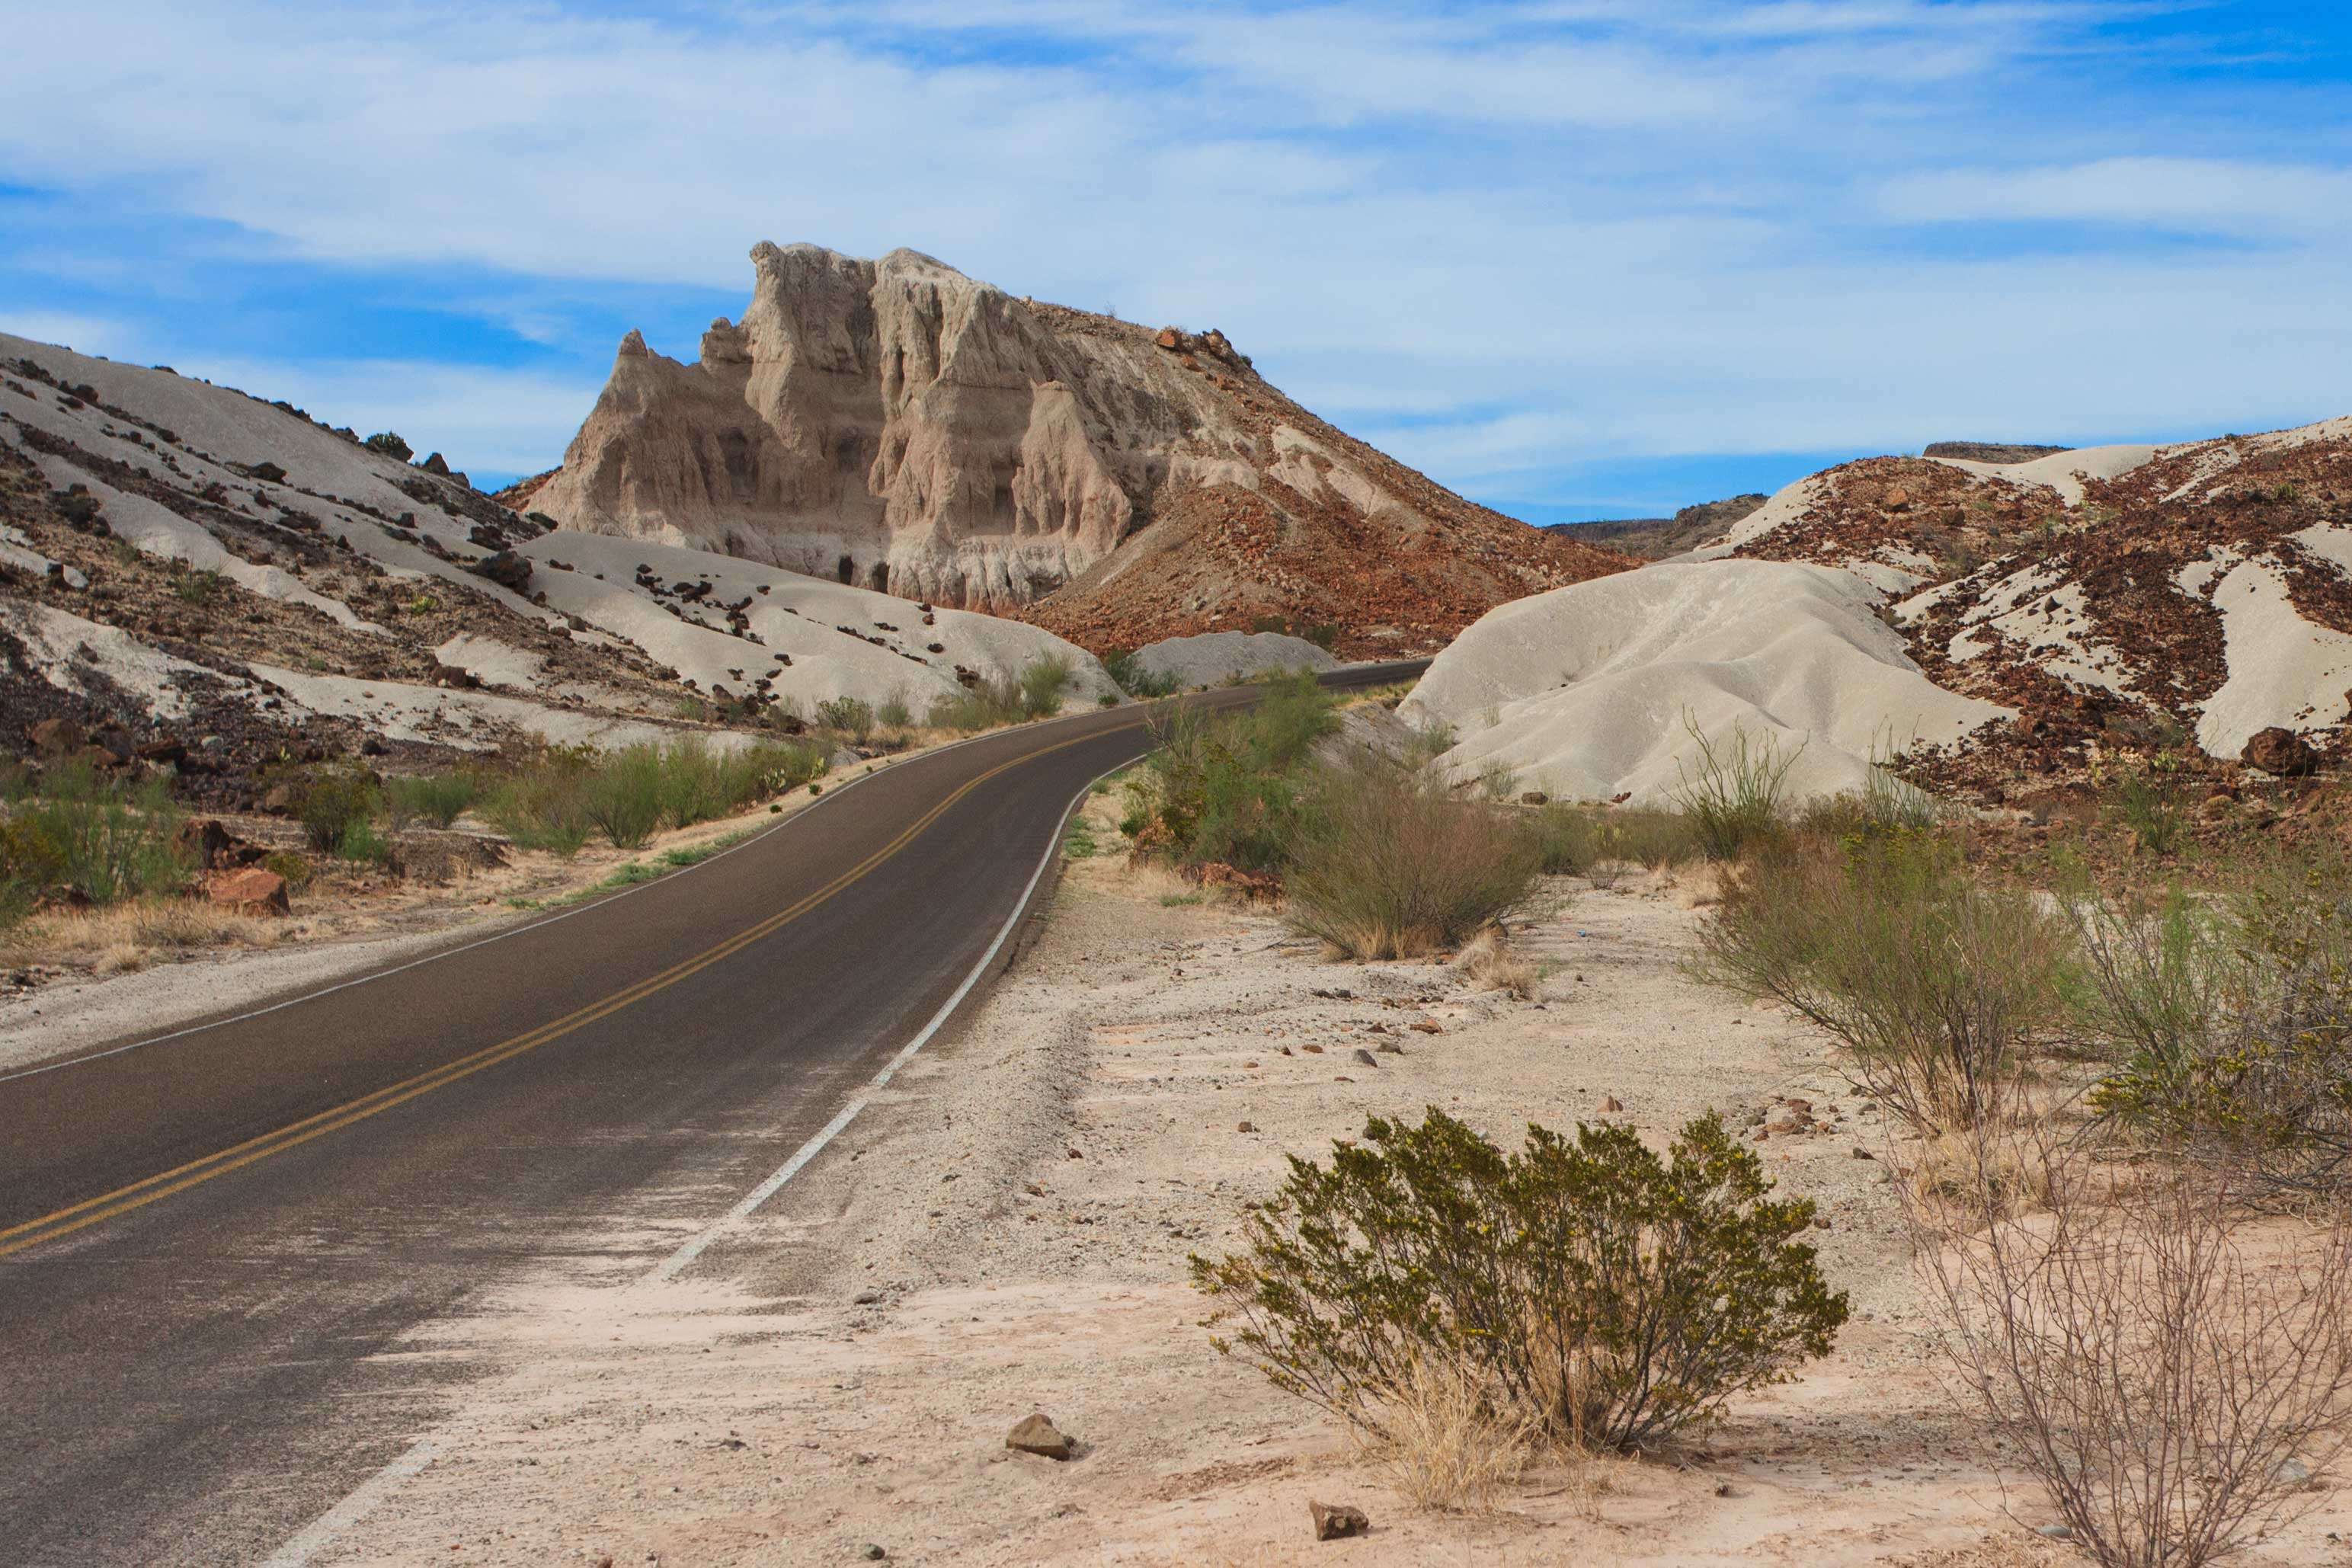 Driving North on the Ross Maxwell Scenic Drive after visiting the Santa Elena Canyon via the Old Maverick Trail; traveling back to the Chisos Mountains Lodge for the evening.